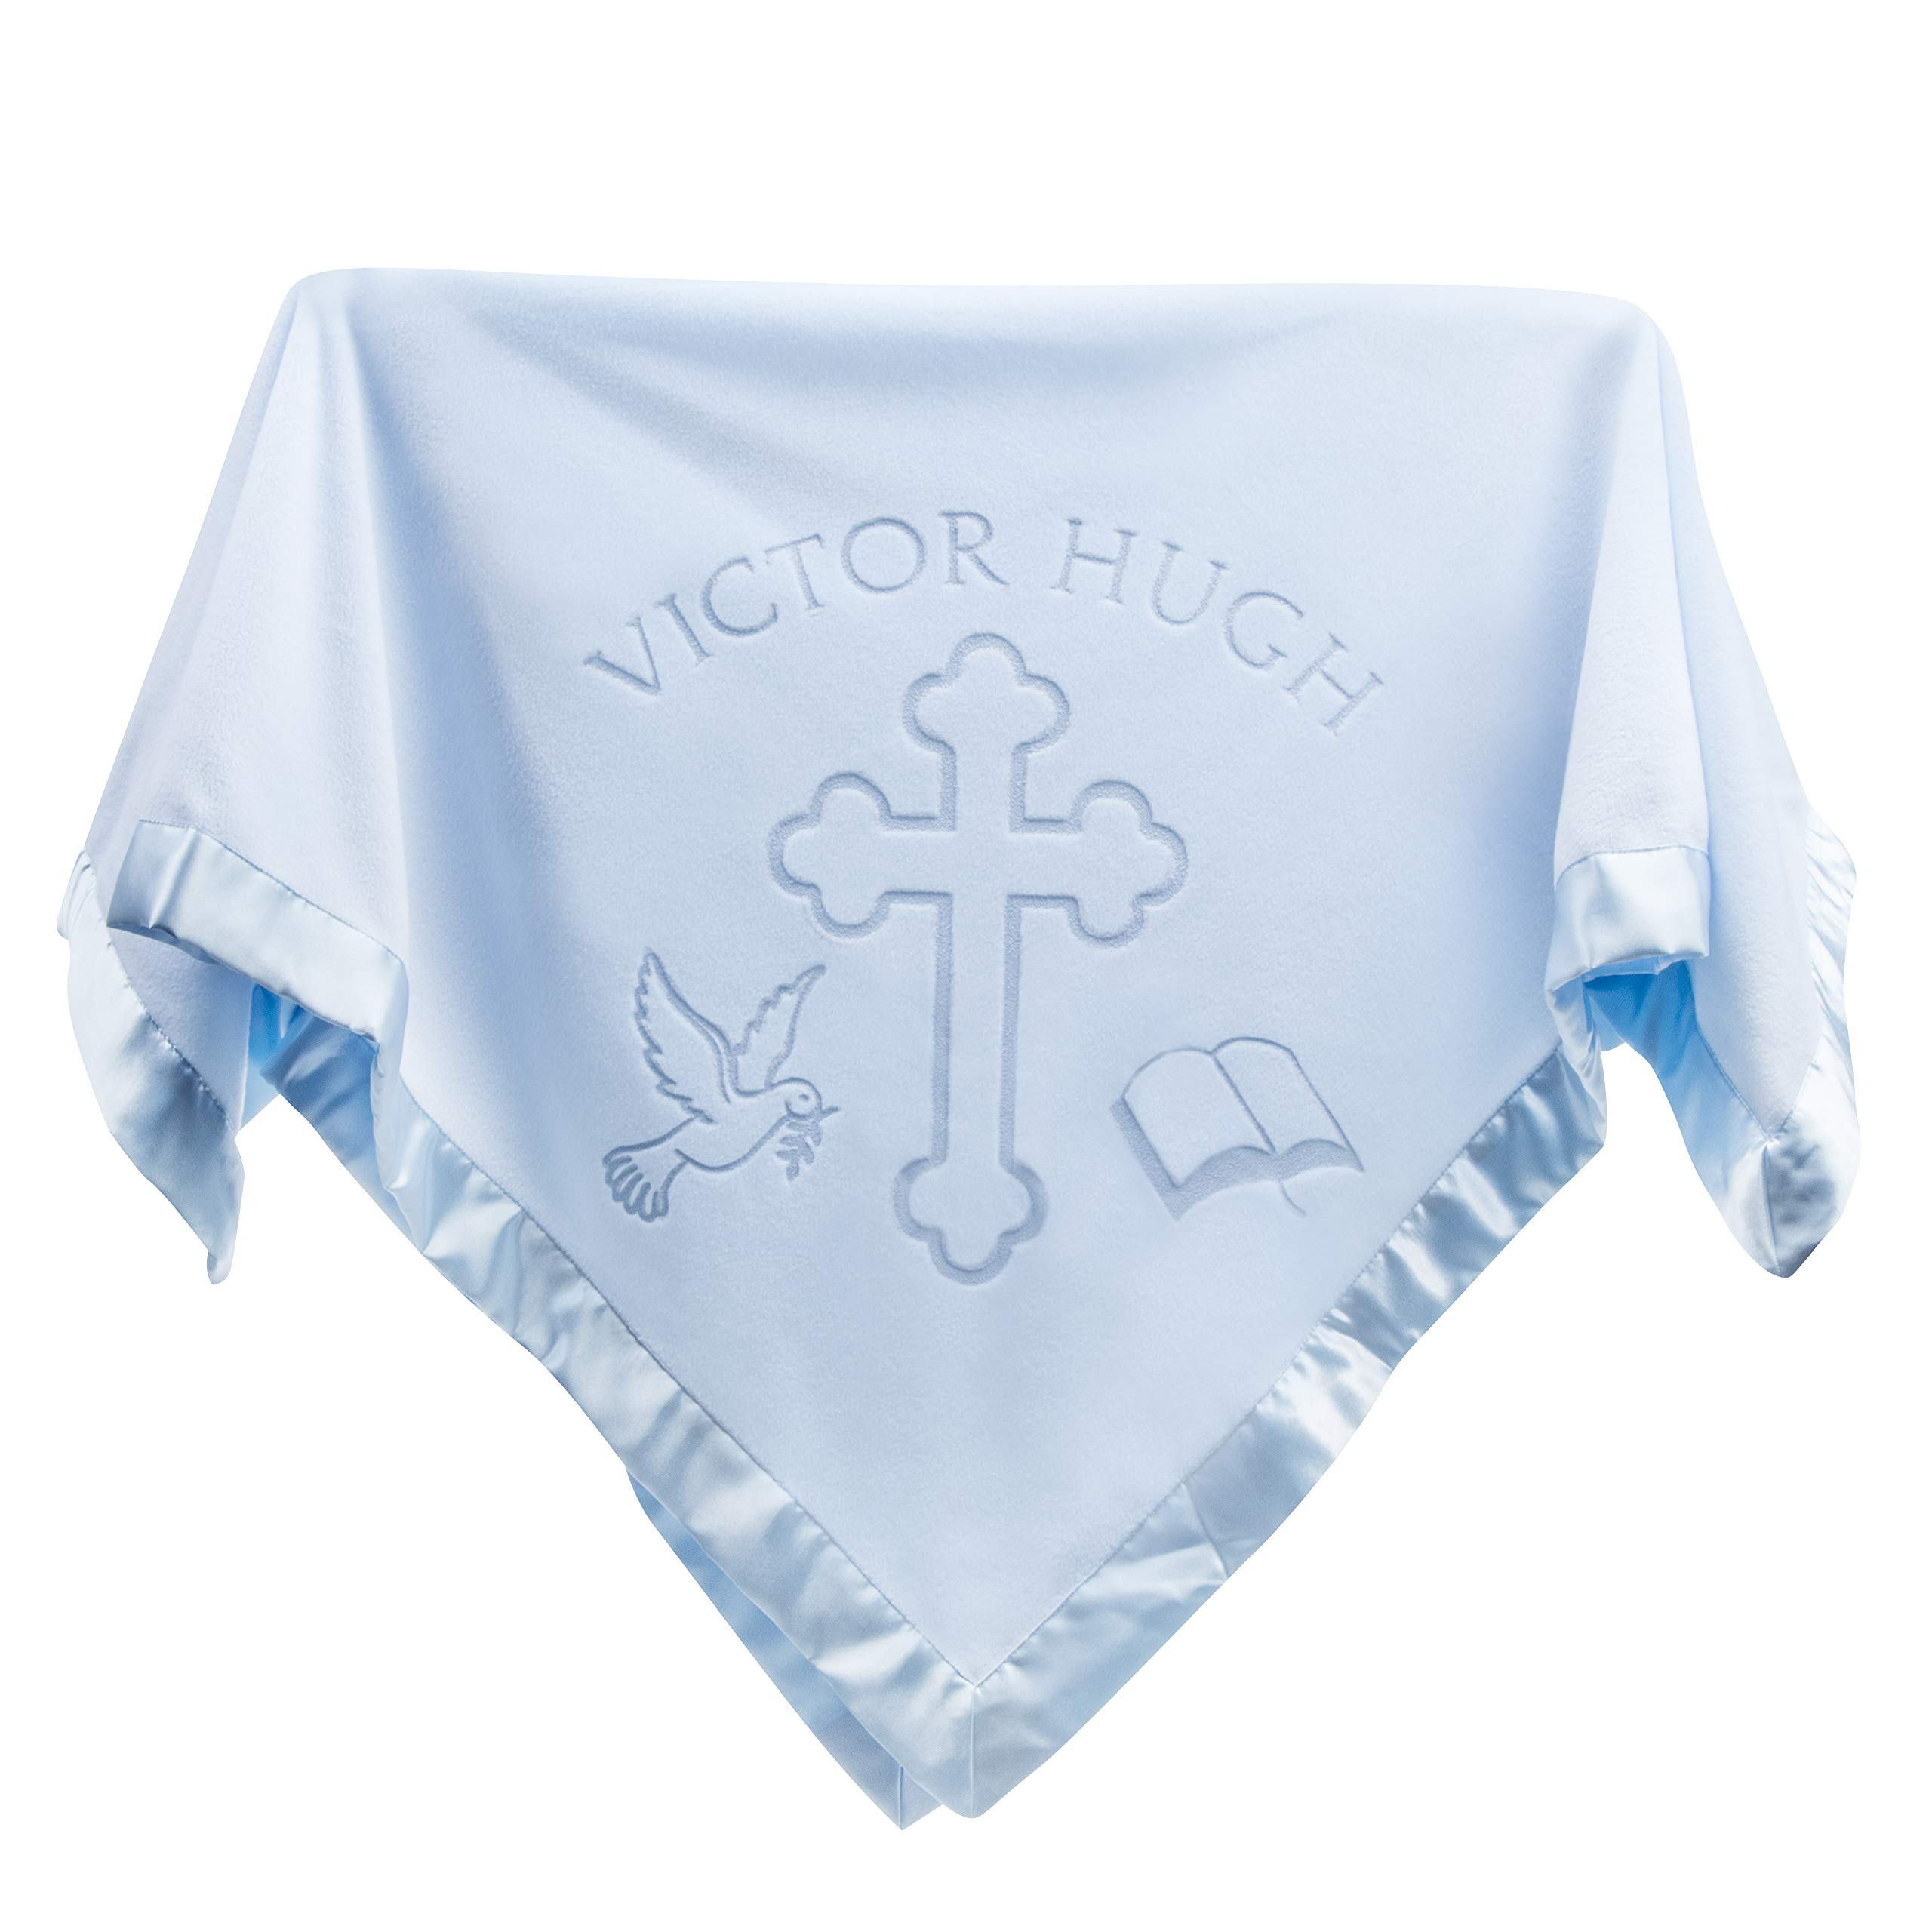 Custom Catch Personalized Baptism Baby Blanket Gift - Boy Name for Christening (Blue, 1 Text Line)